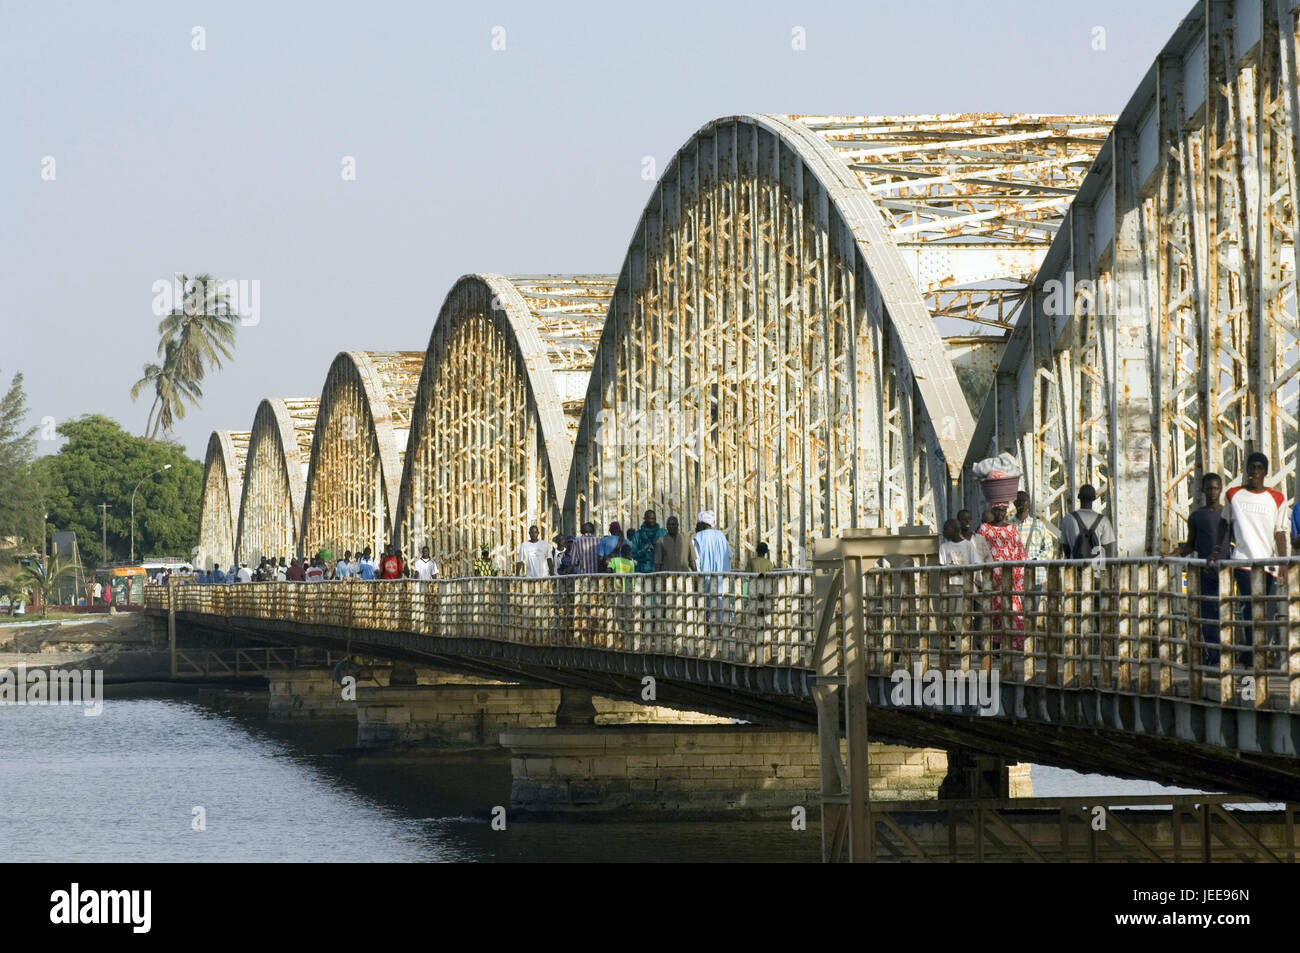 Pedestrian, Pont Faidherbe, river, Saint-Louis, Senegal, Stock Photo